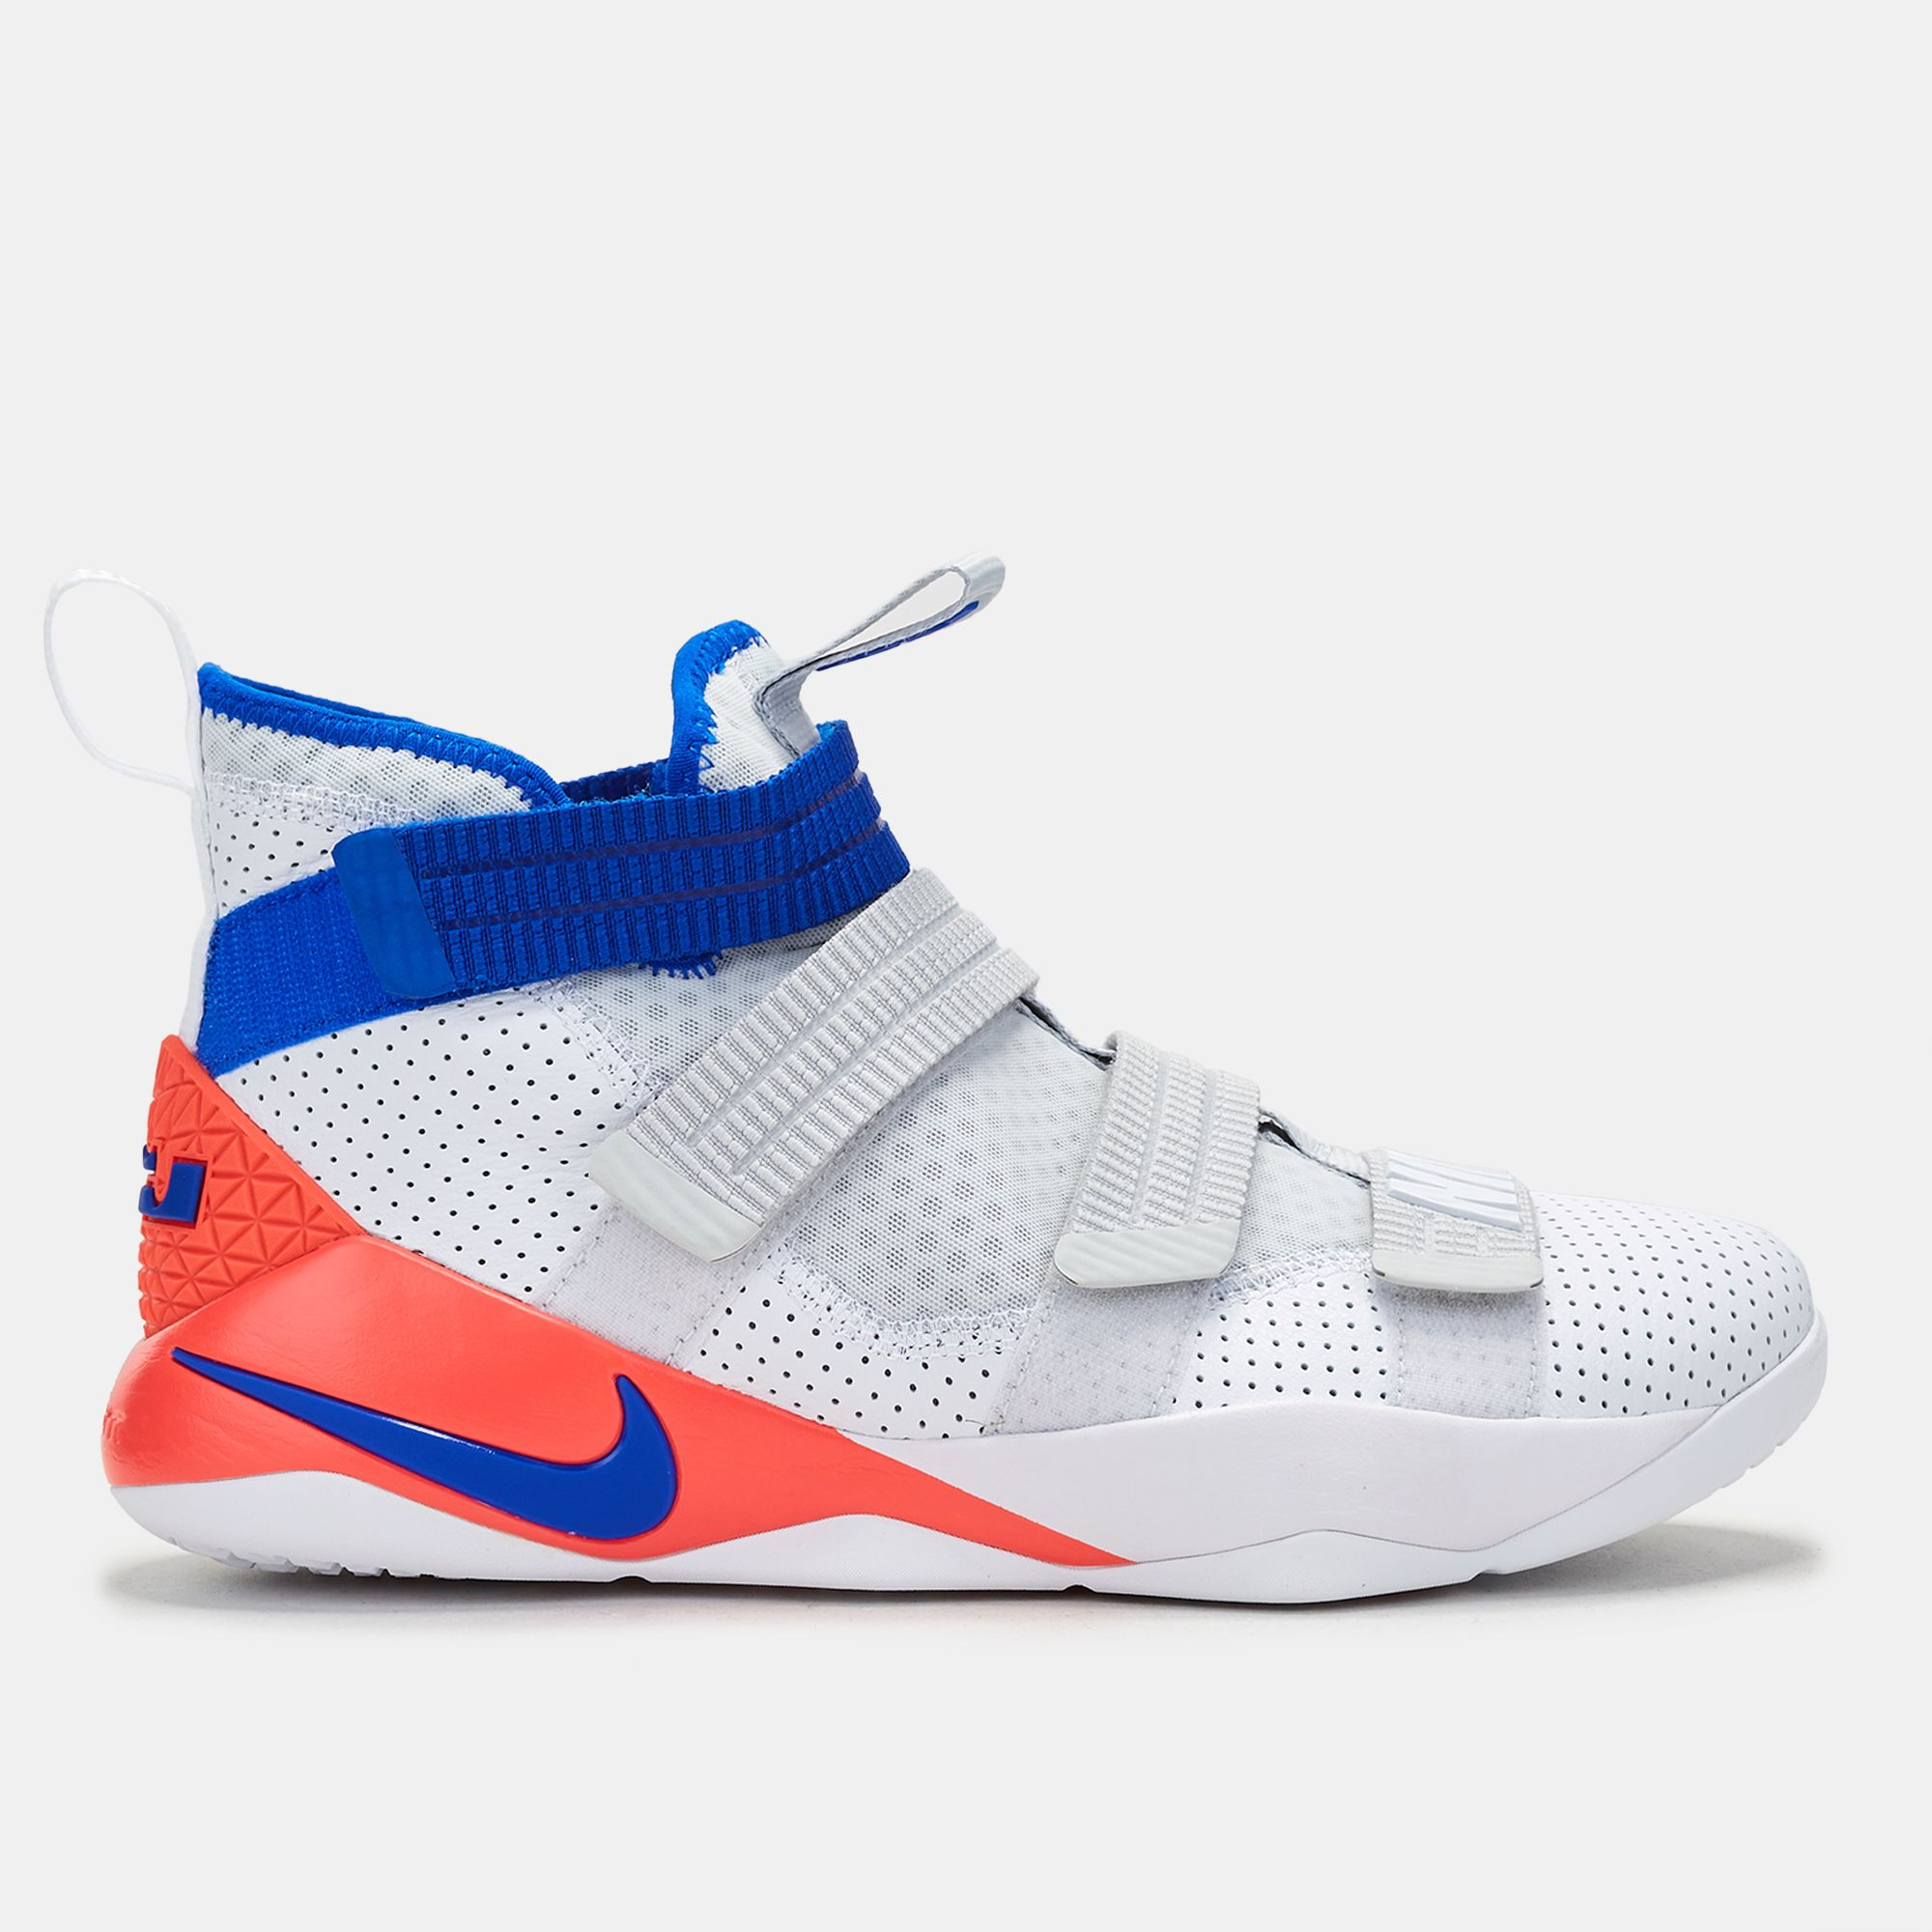 0b6846a71bc5 Shop White Nike LeBron Soldier 11 SFG Basketball Shoe for Mens by ...